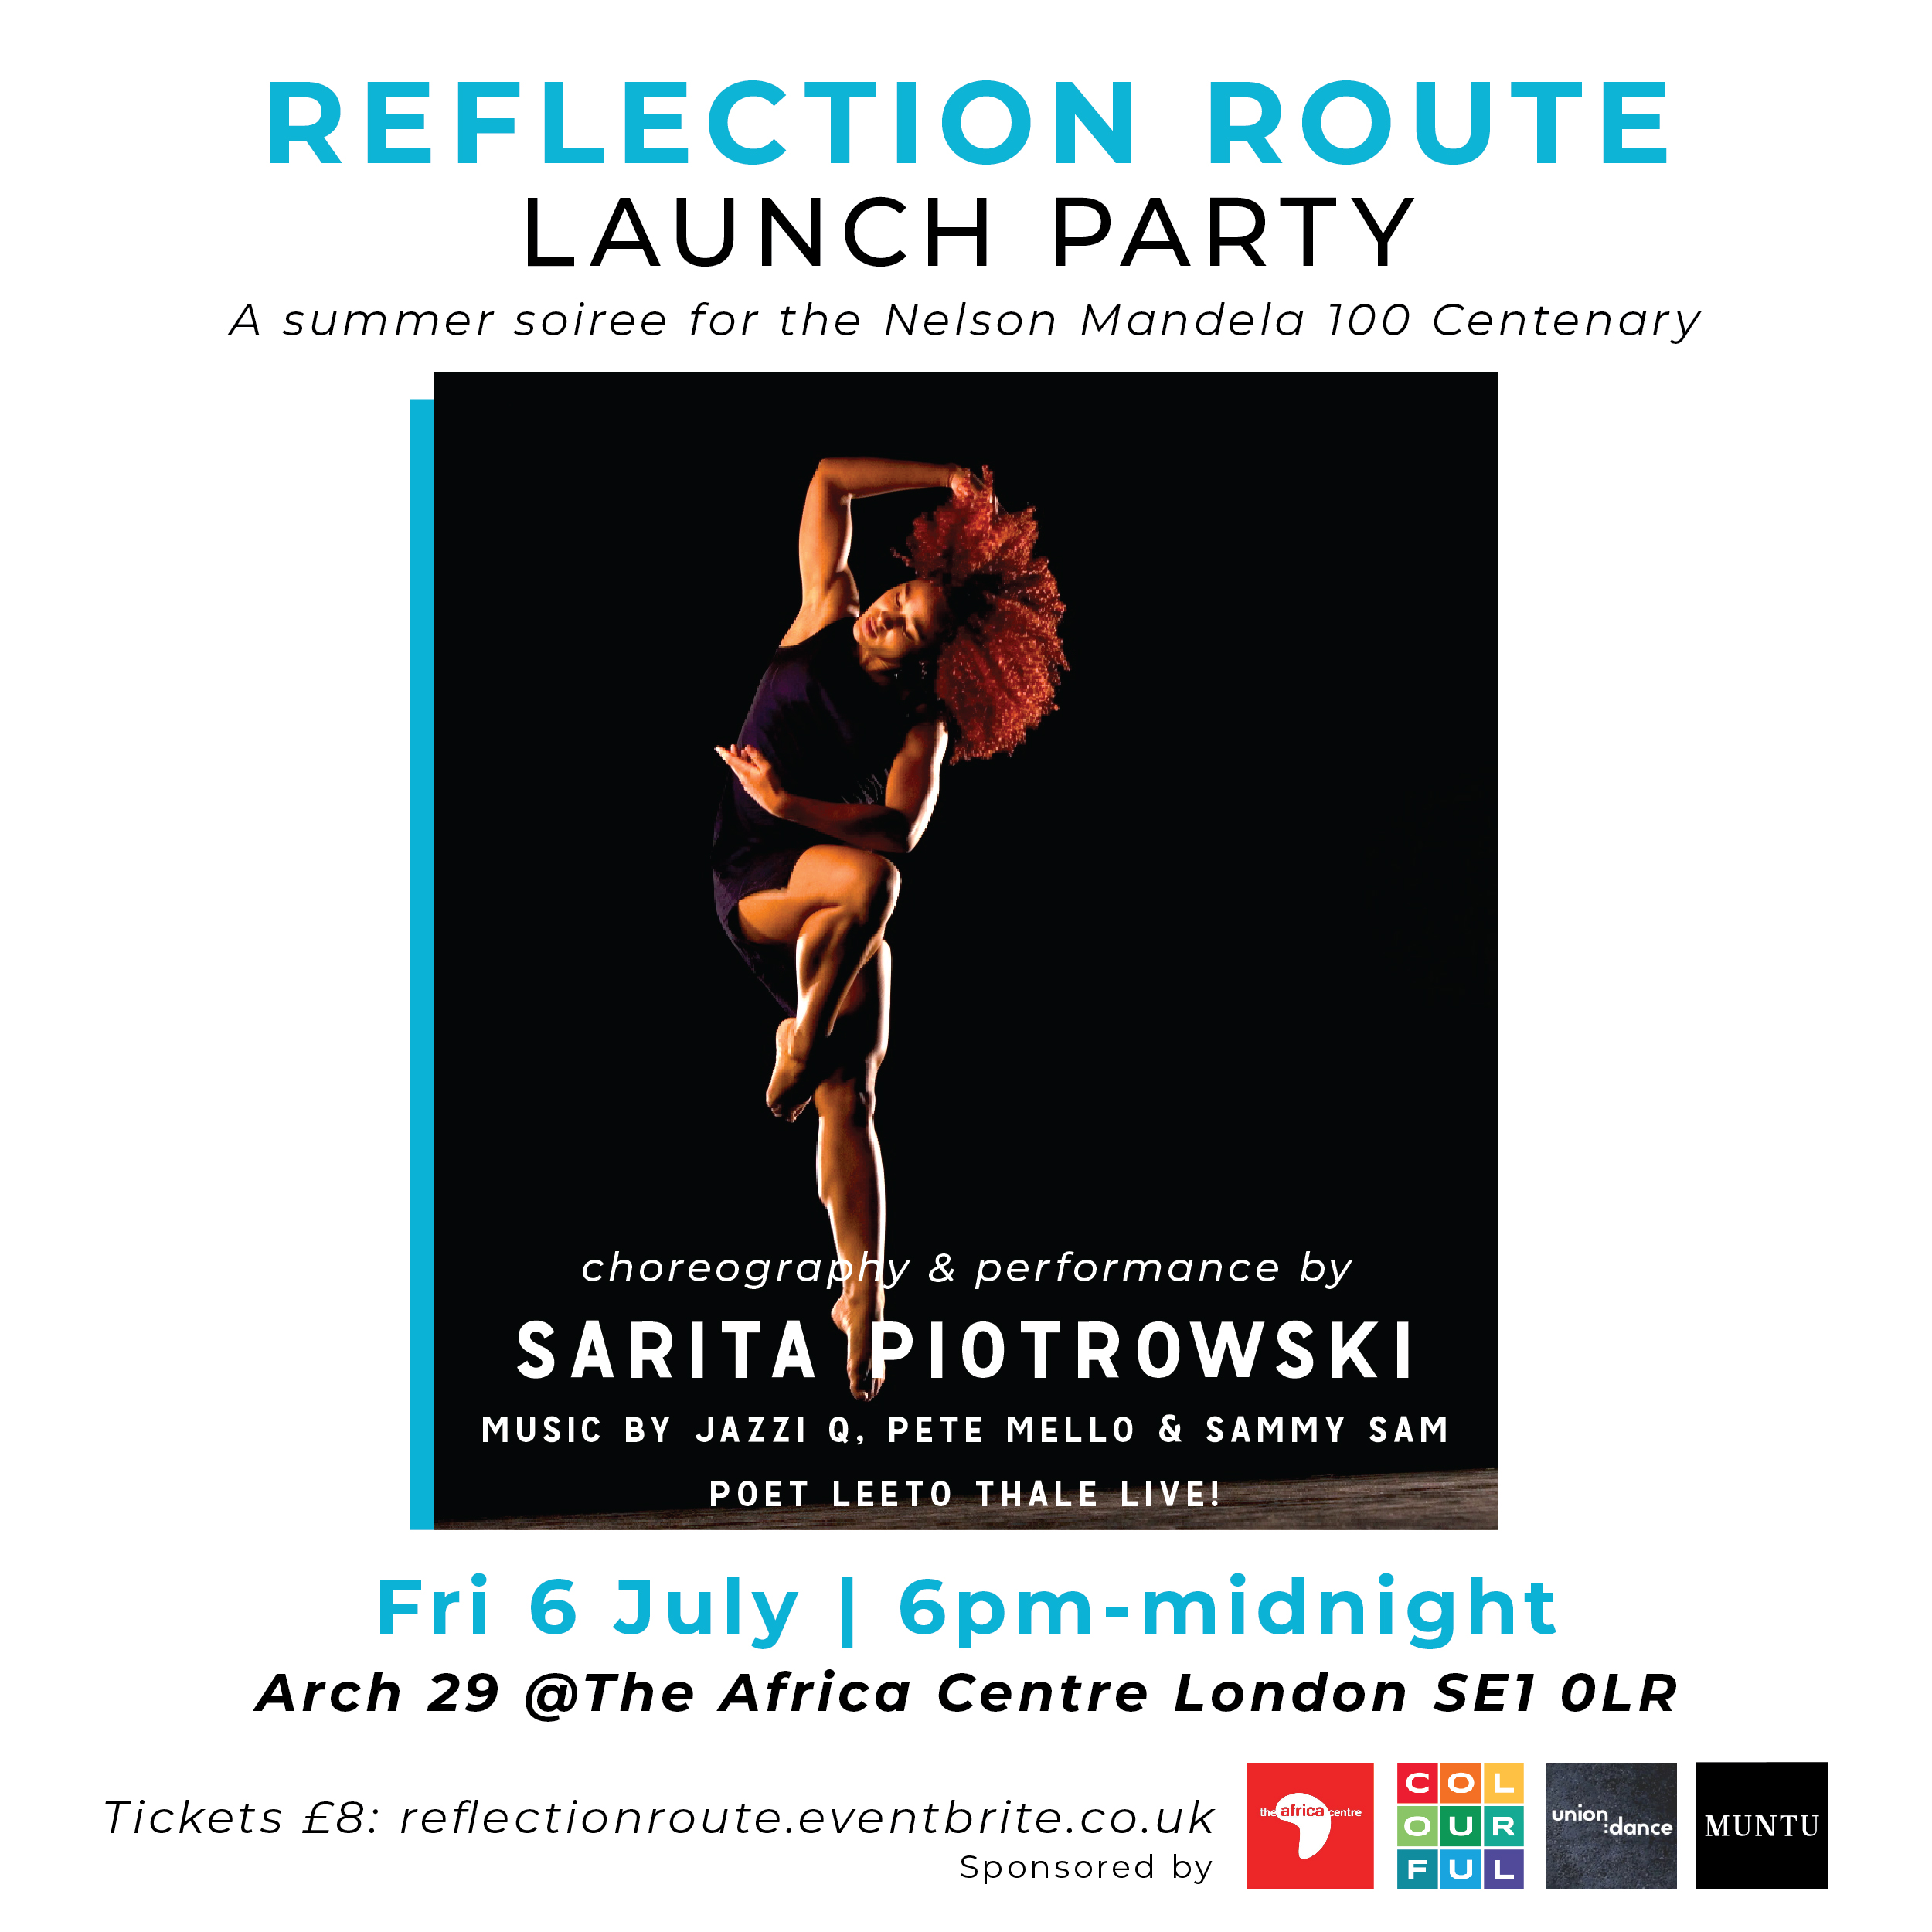 Celebrate the legacy of Nelson Mandela with Colourful Radio DJs, poetry & Afro Contemporary dance performances at The Africa Centre